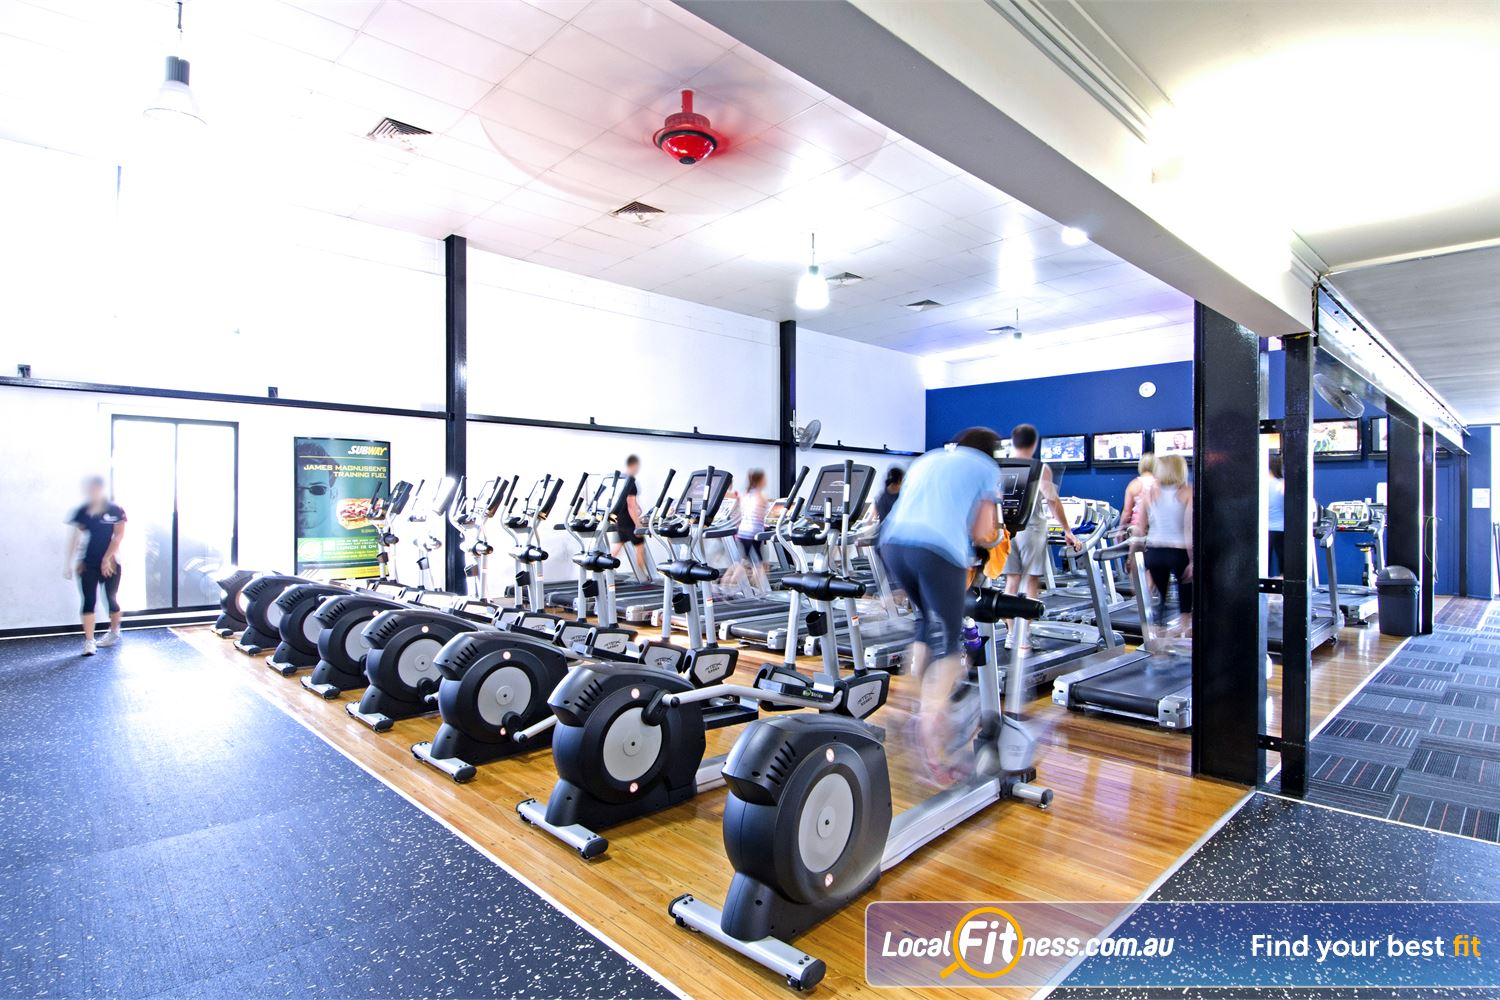 Goodlife Health Clubs Near Tennyson Our Graceville gym features plenty of cardio machines so you won't have to wait.